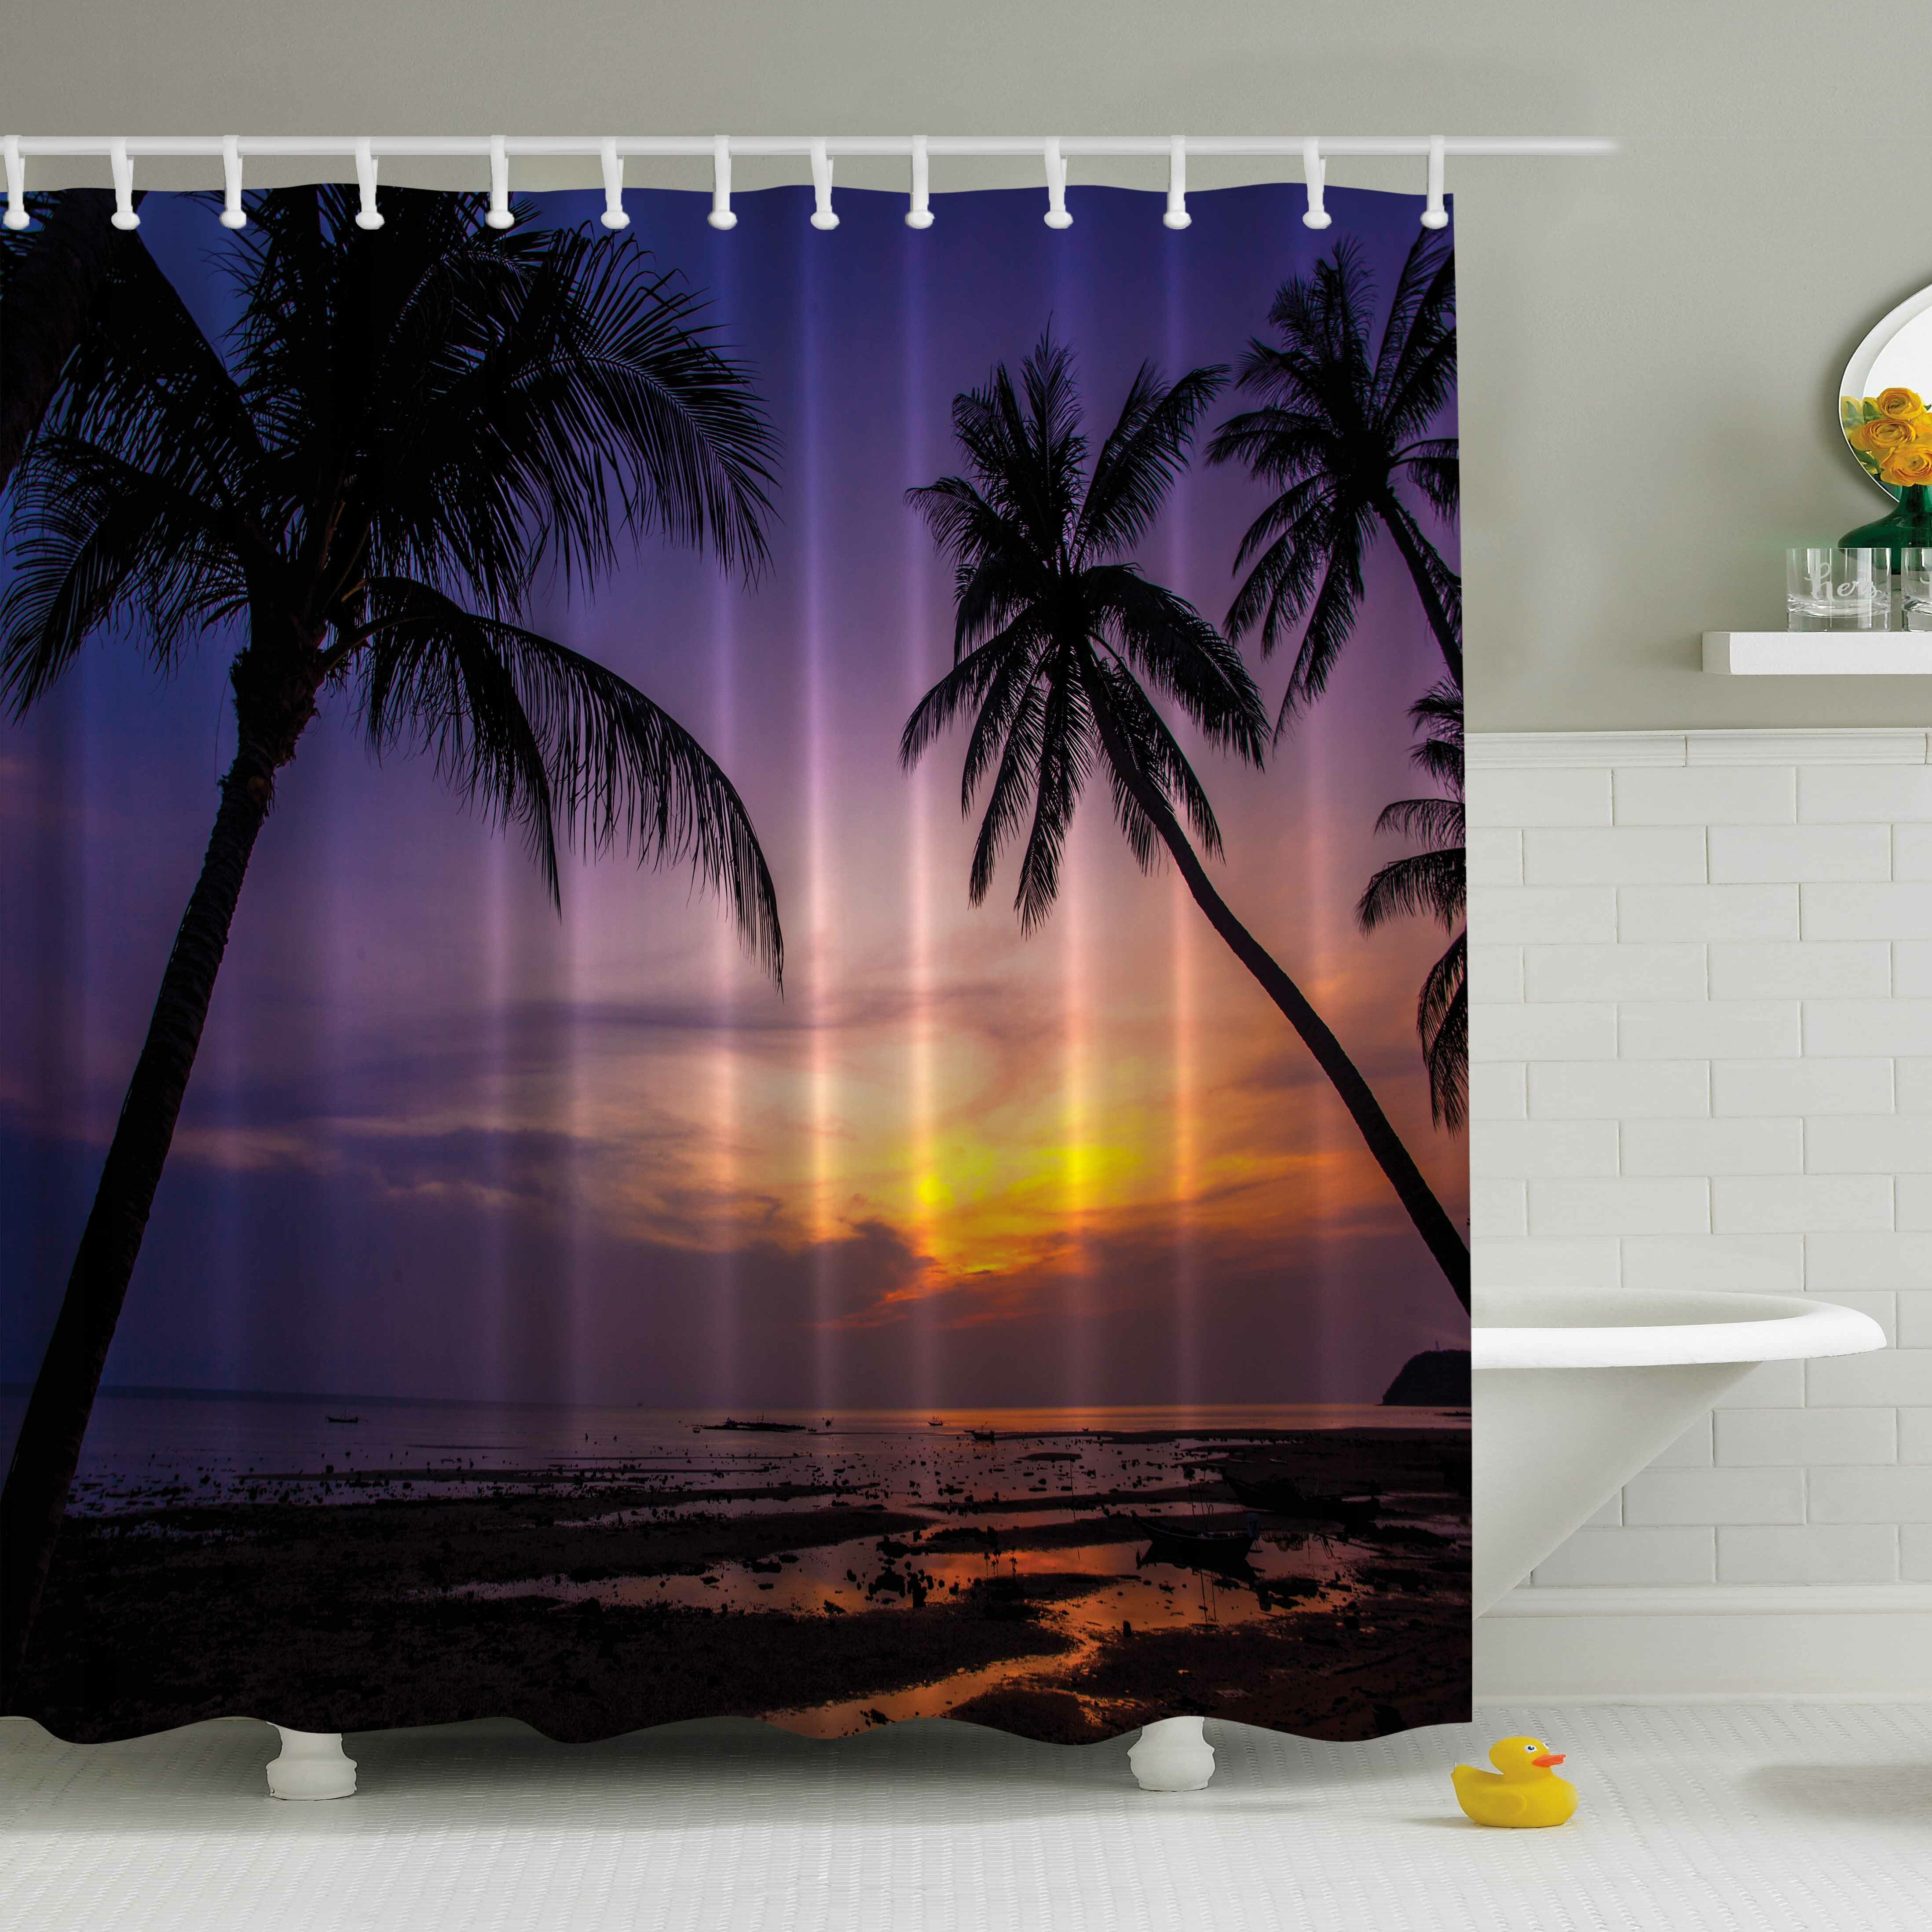 Landscape Shower Curtain Open Window to River Print for Bathroom